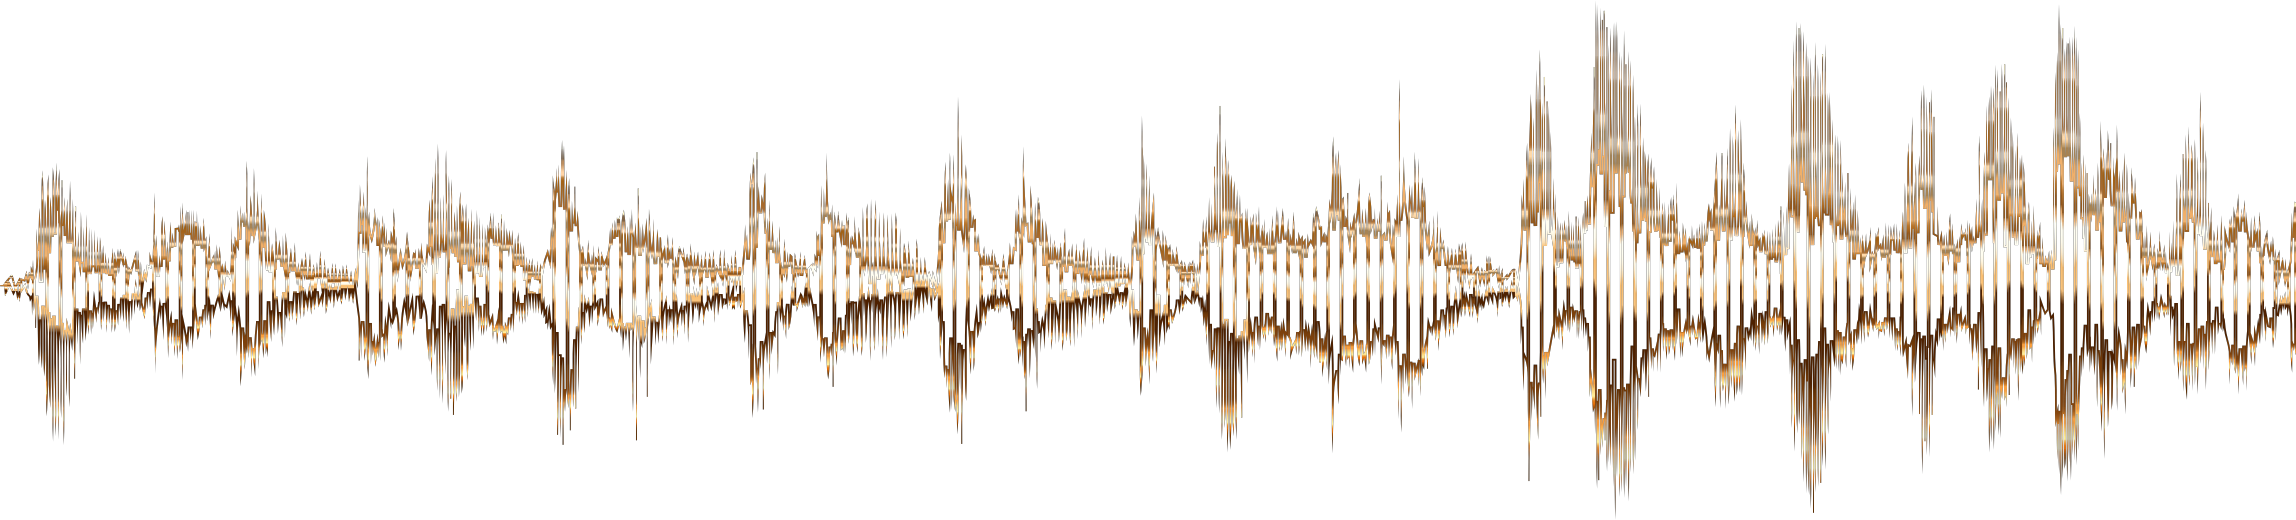 Clipart - City Of Gold Sound Wave No Background